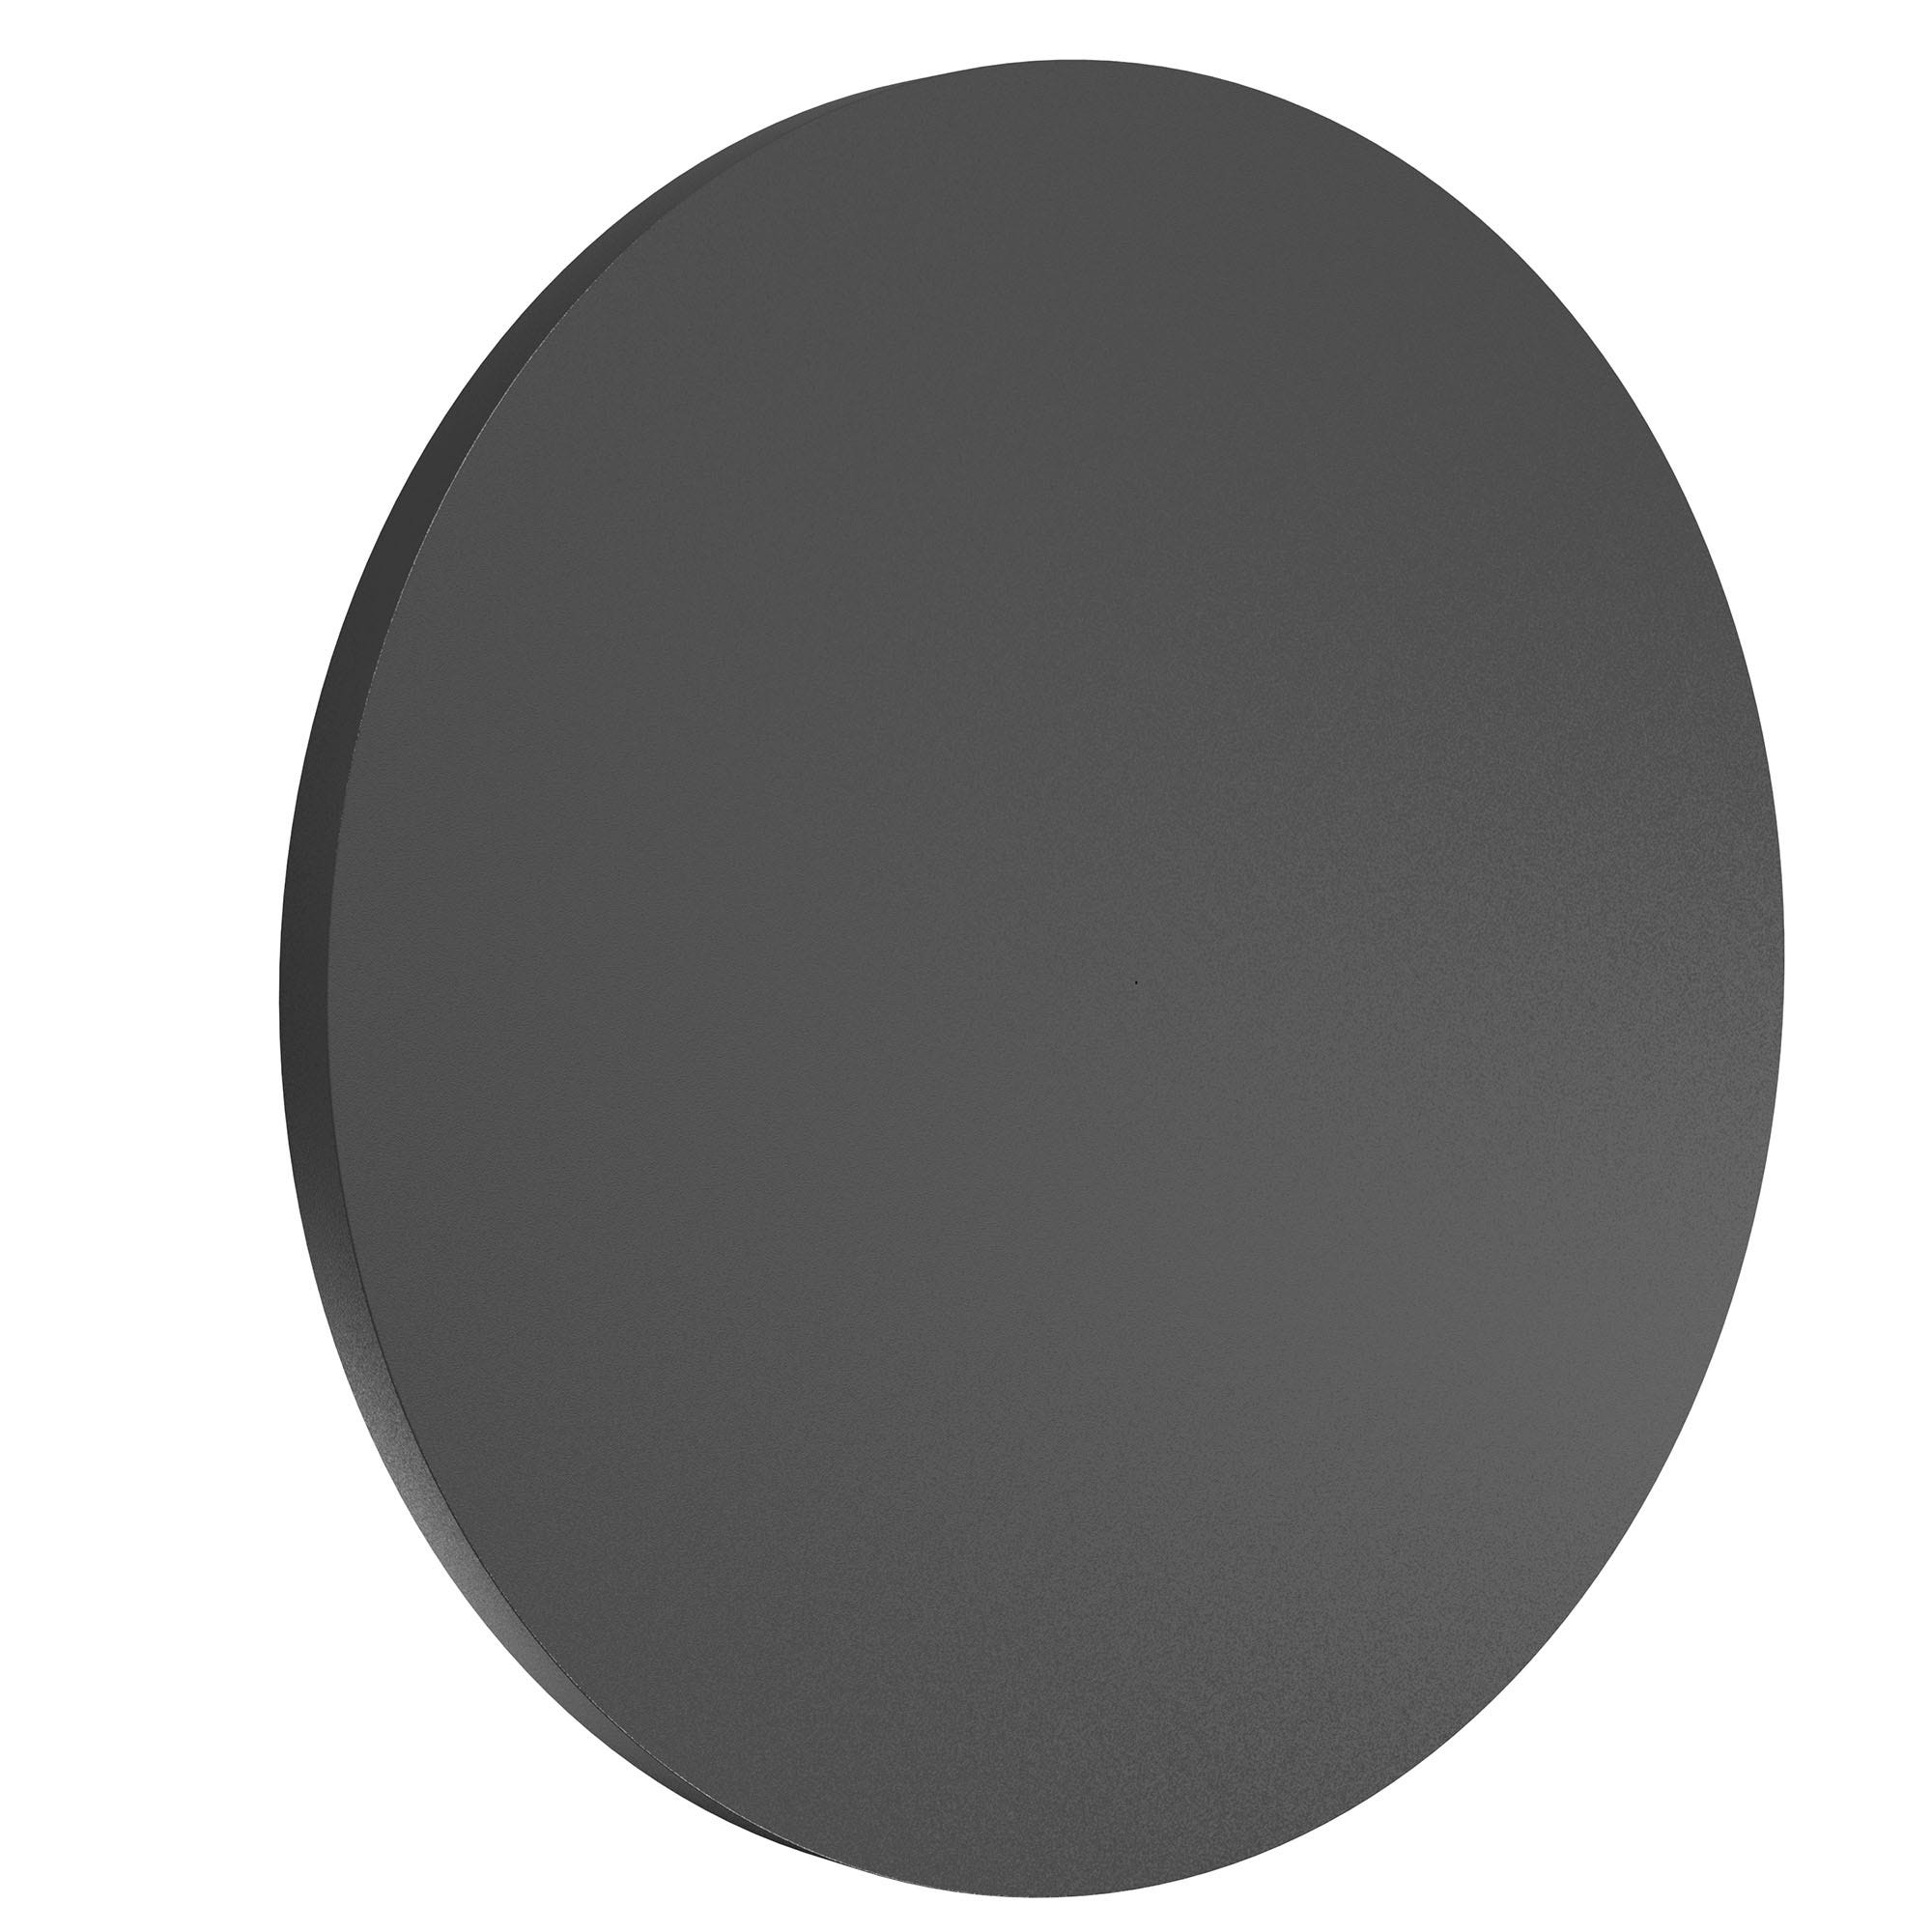 As Shown: Camouflage Wall Light Deep Brown.